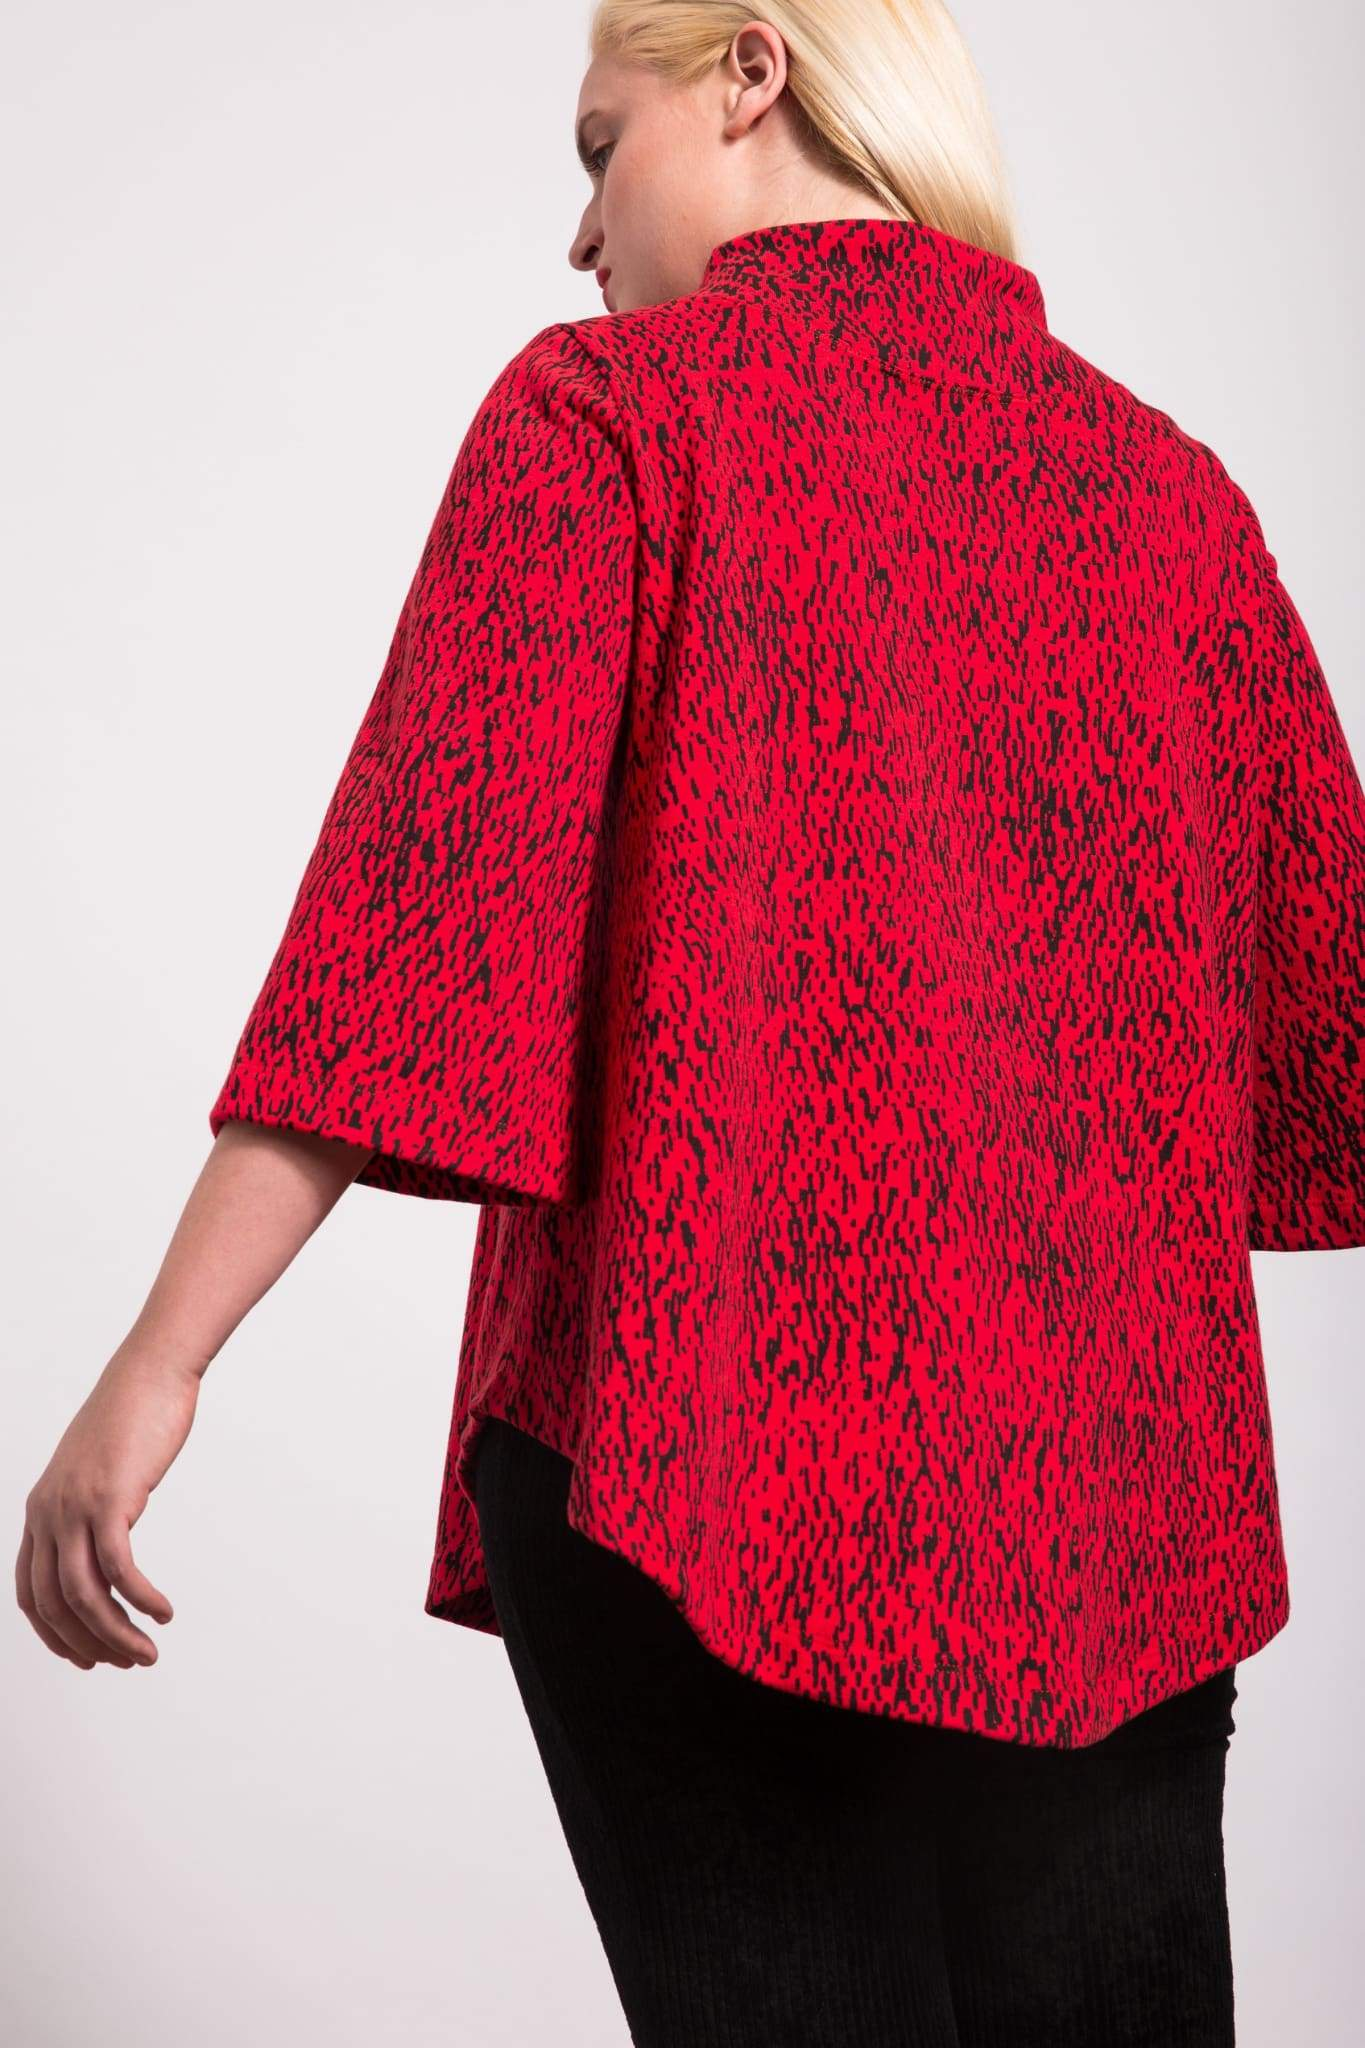 Red printed Swing Sweatshirt by Lobo Mau | Nineteenth Amendment